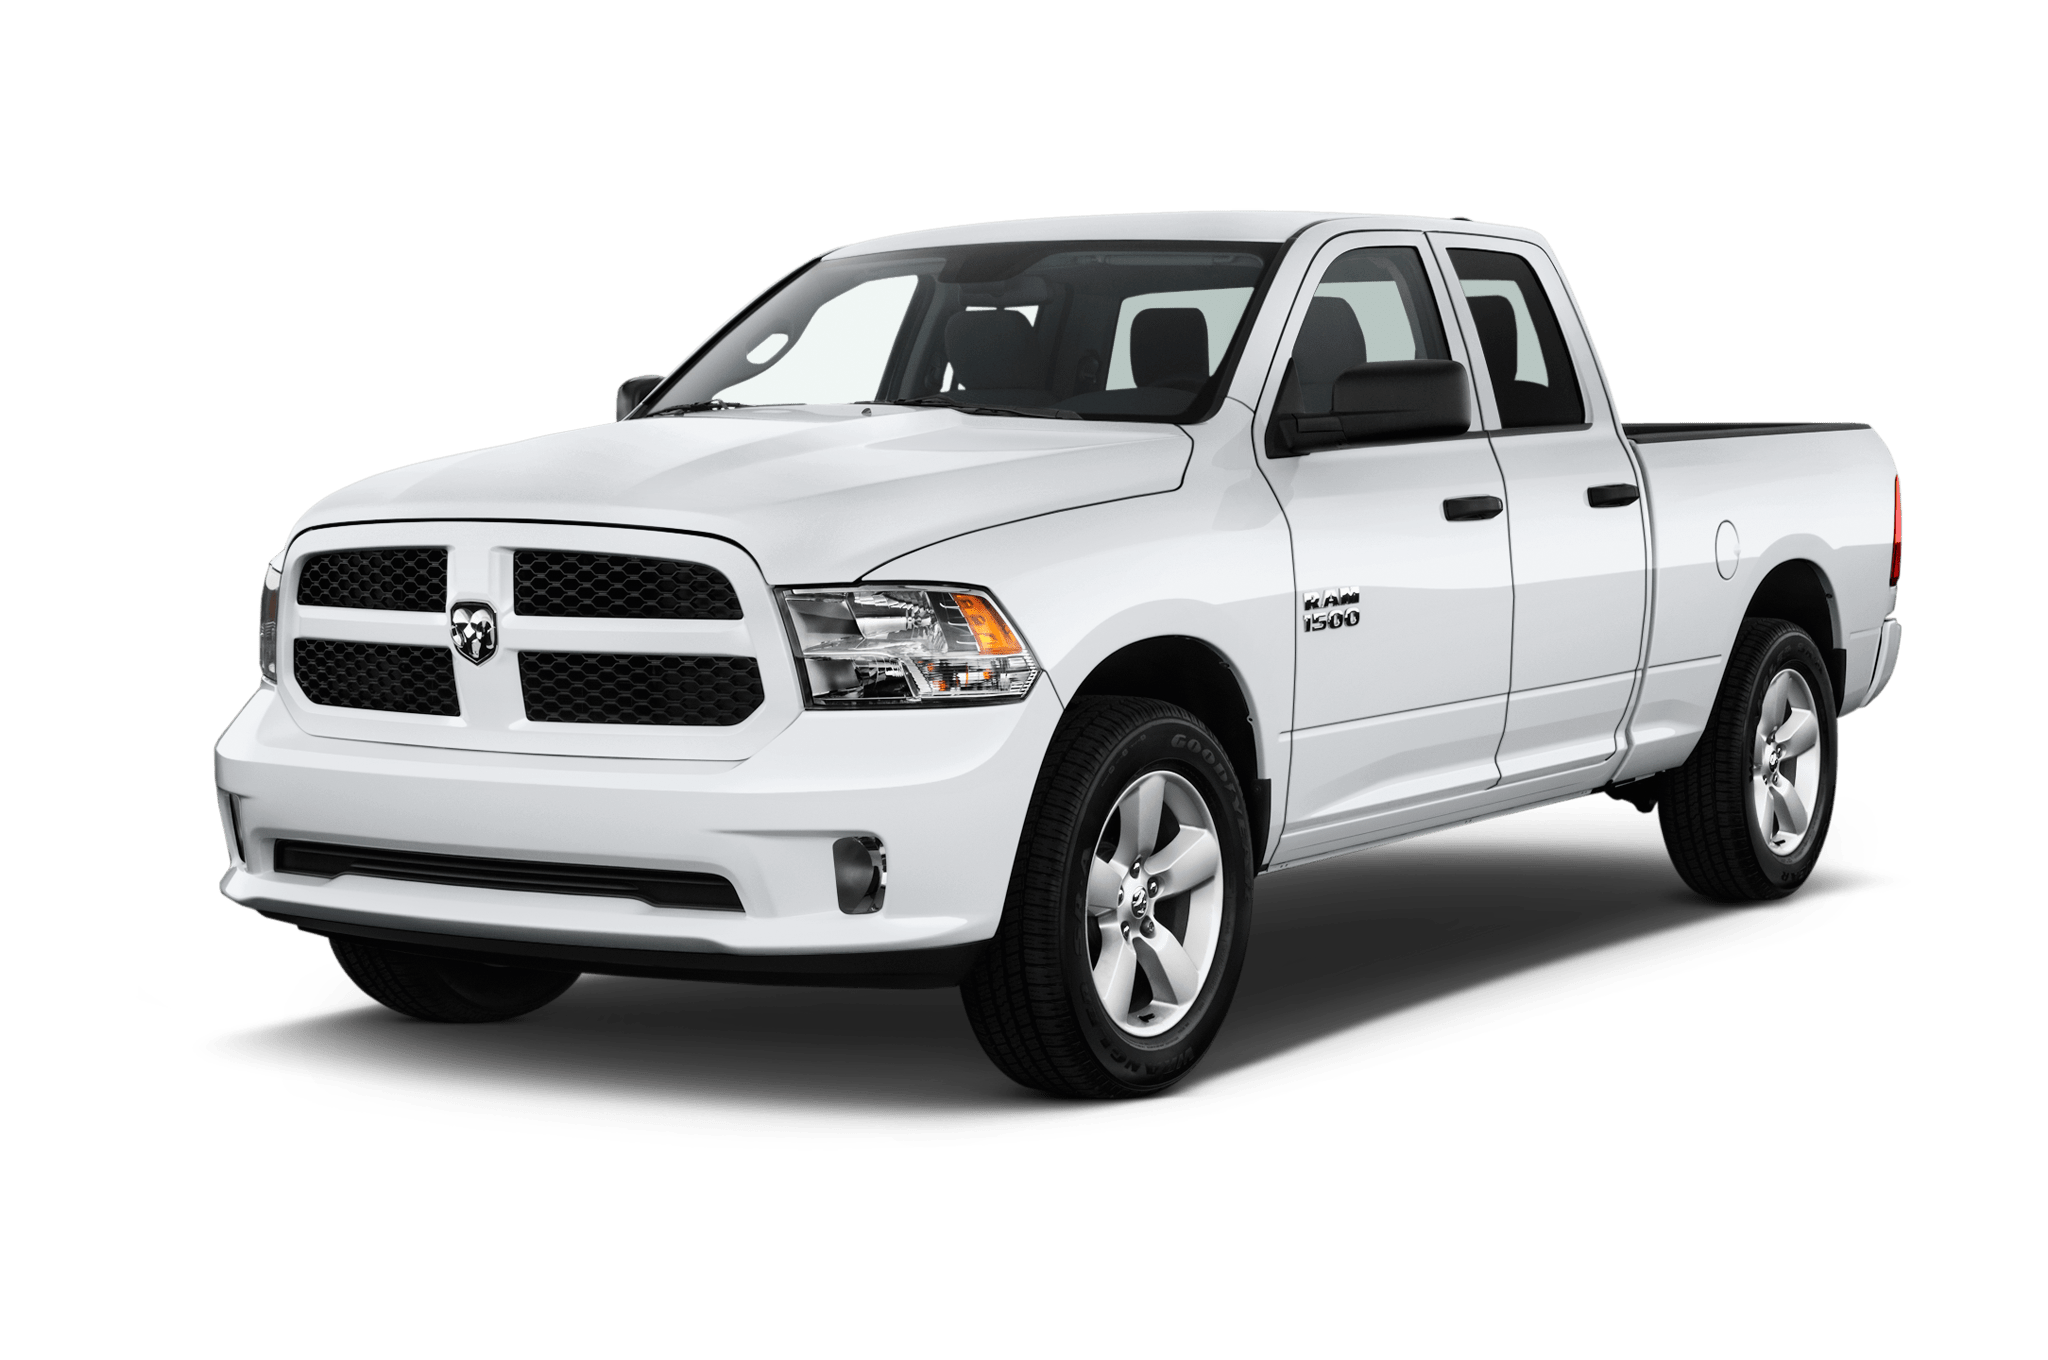 New 2018 Ram 1500 Truck for Lease in Tampa FL